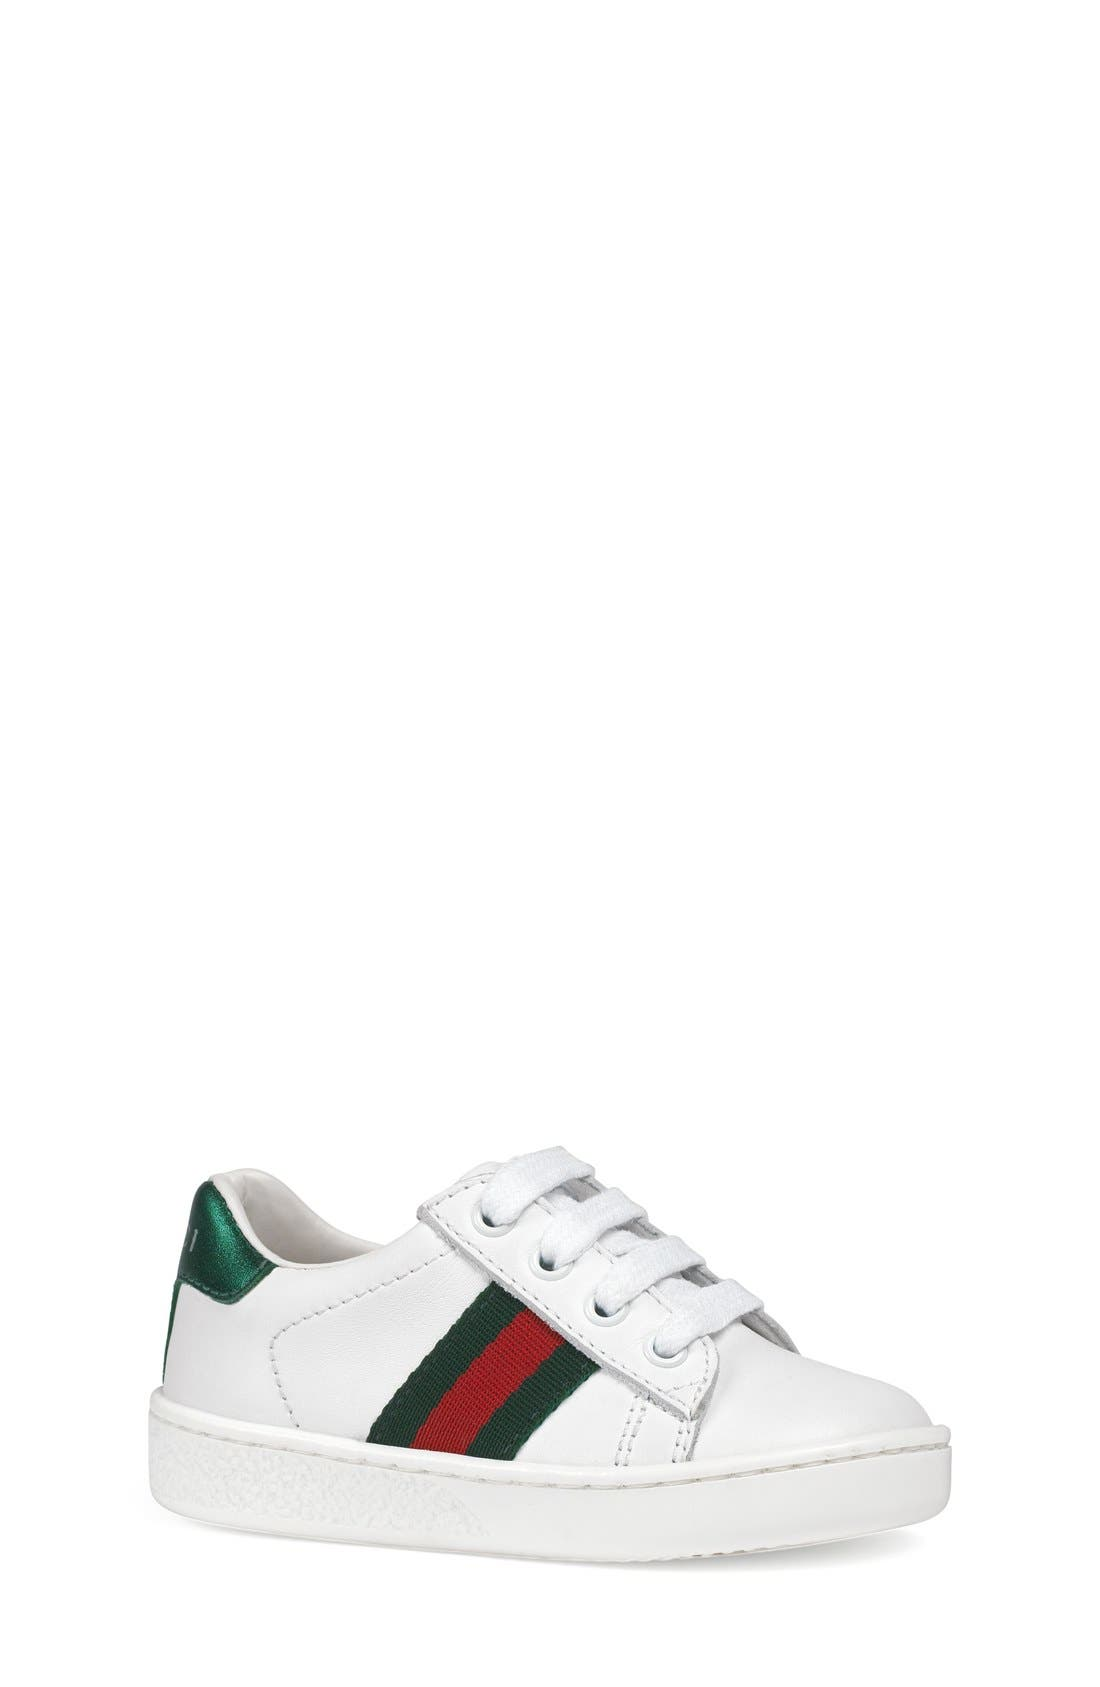 GUCCI, 'Ace' Sneaker, Main thumbnail 1, color, WHITE/ GREEN